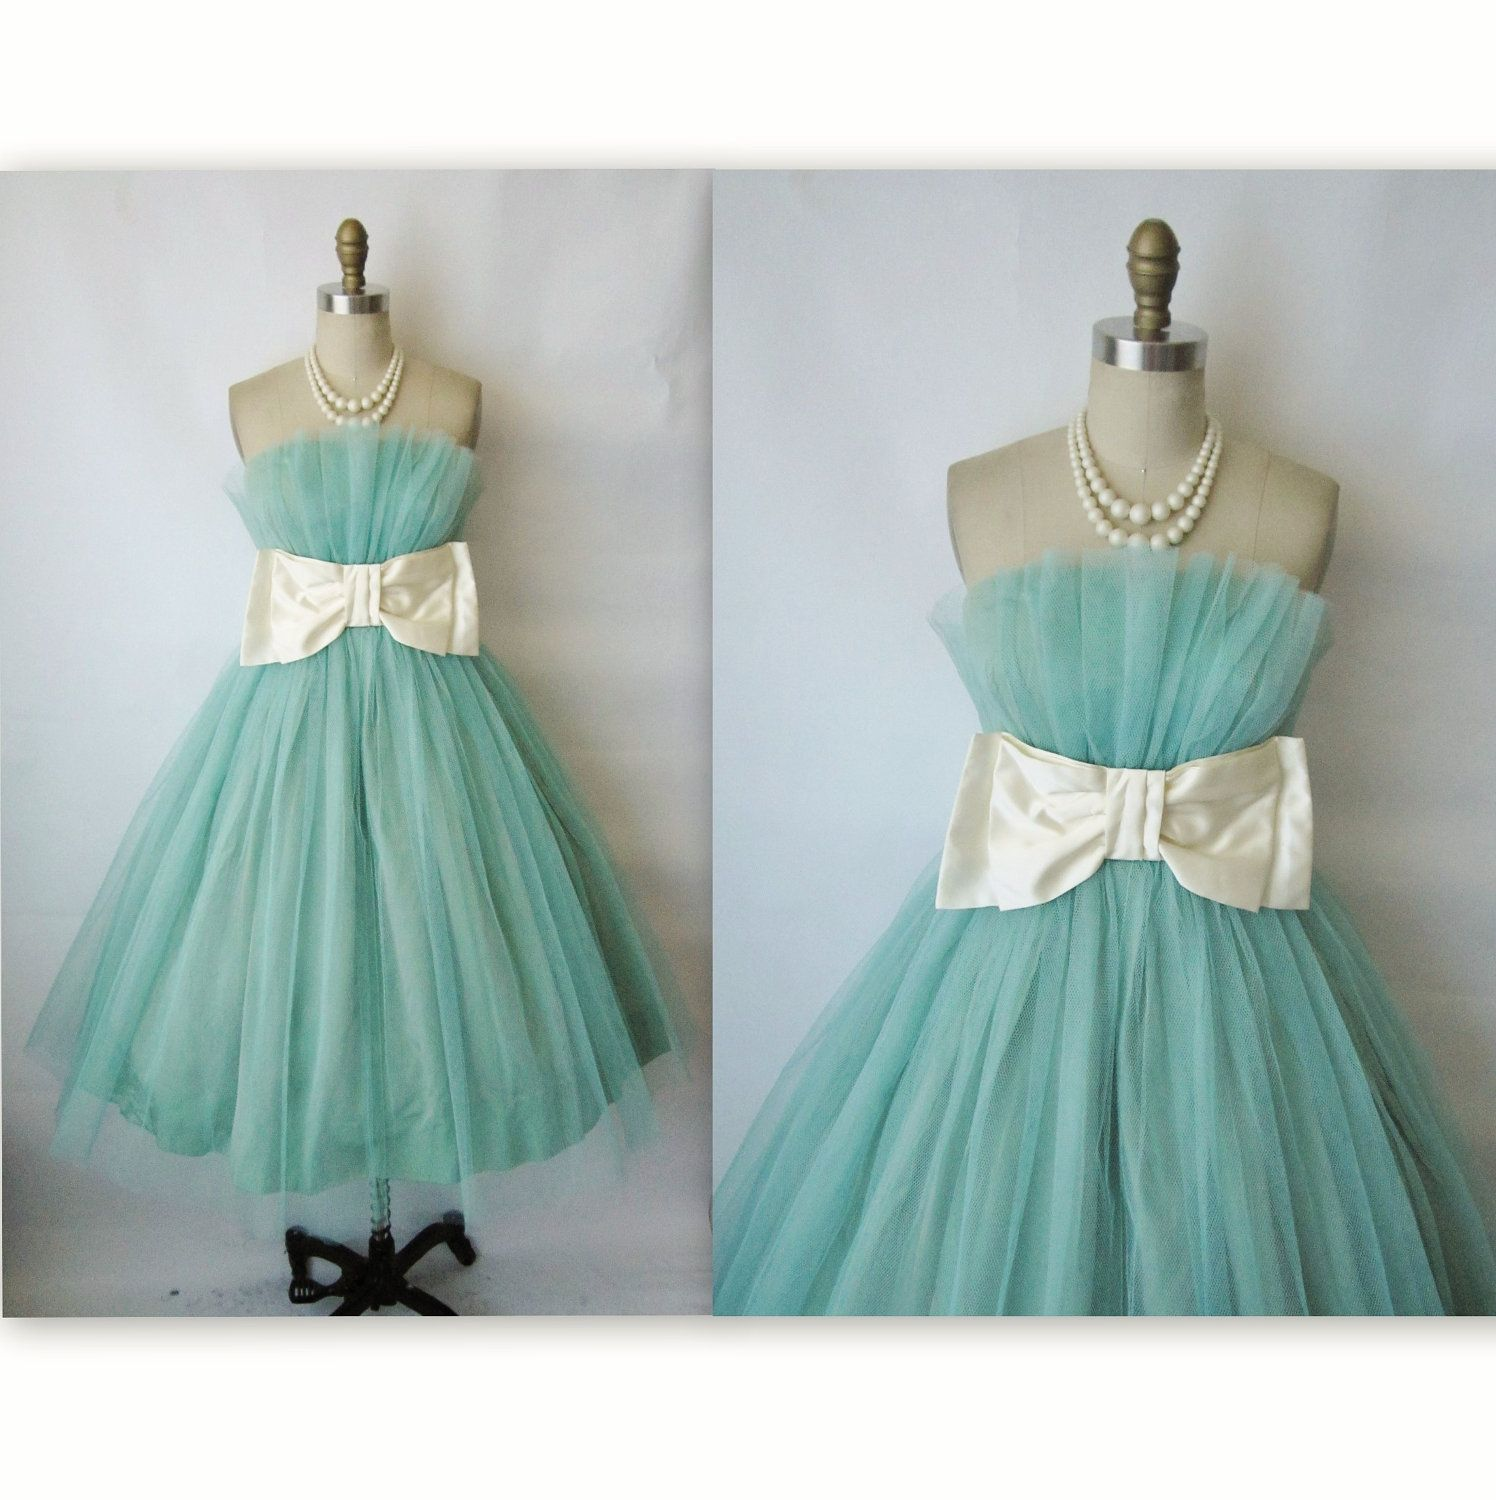 Funky Wedding Gowns: Tiffany Blue Full Length Bridesmaid Dresses